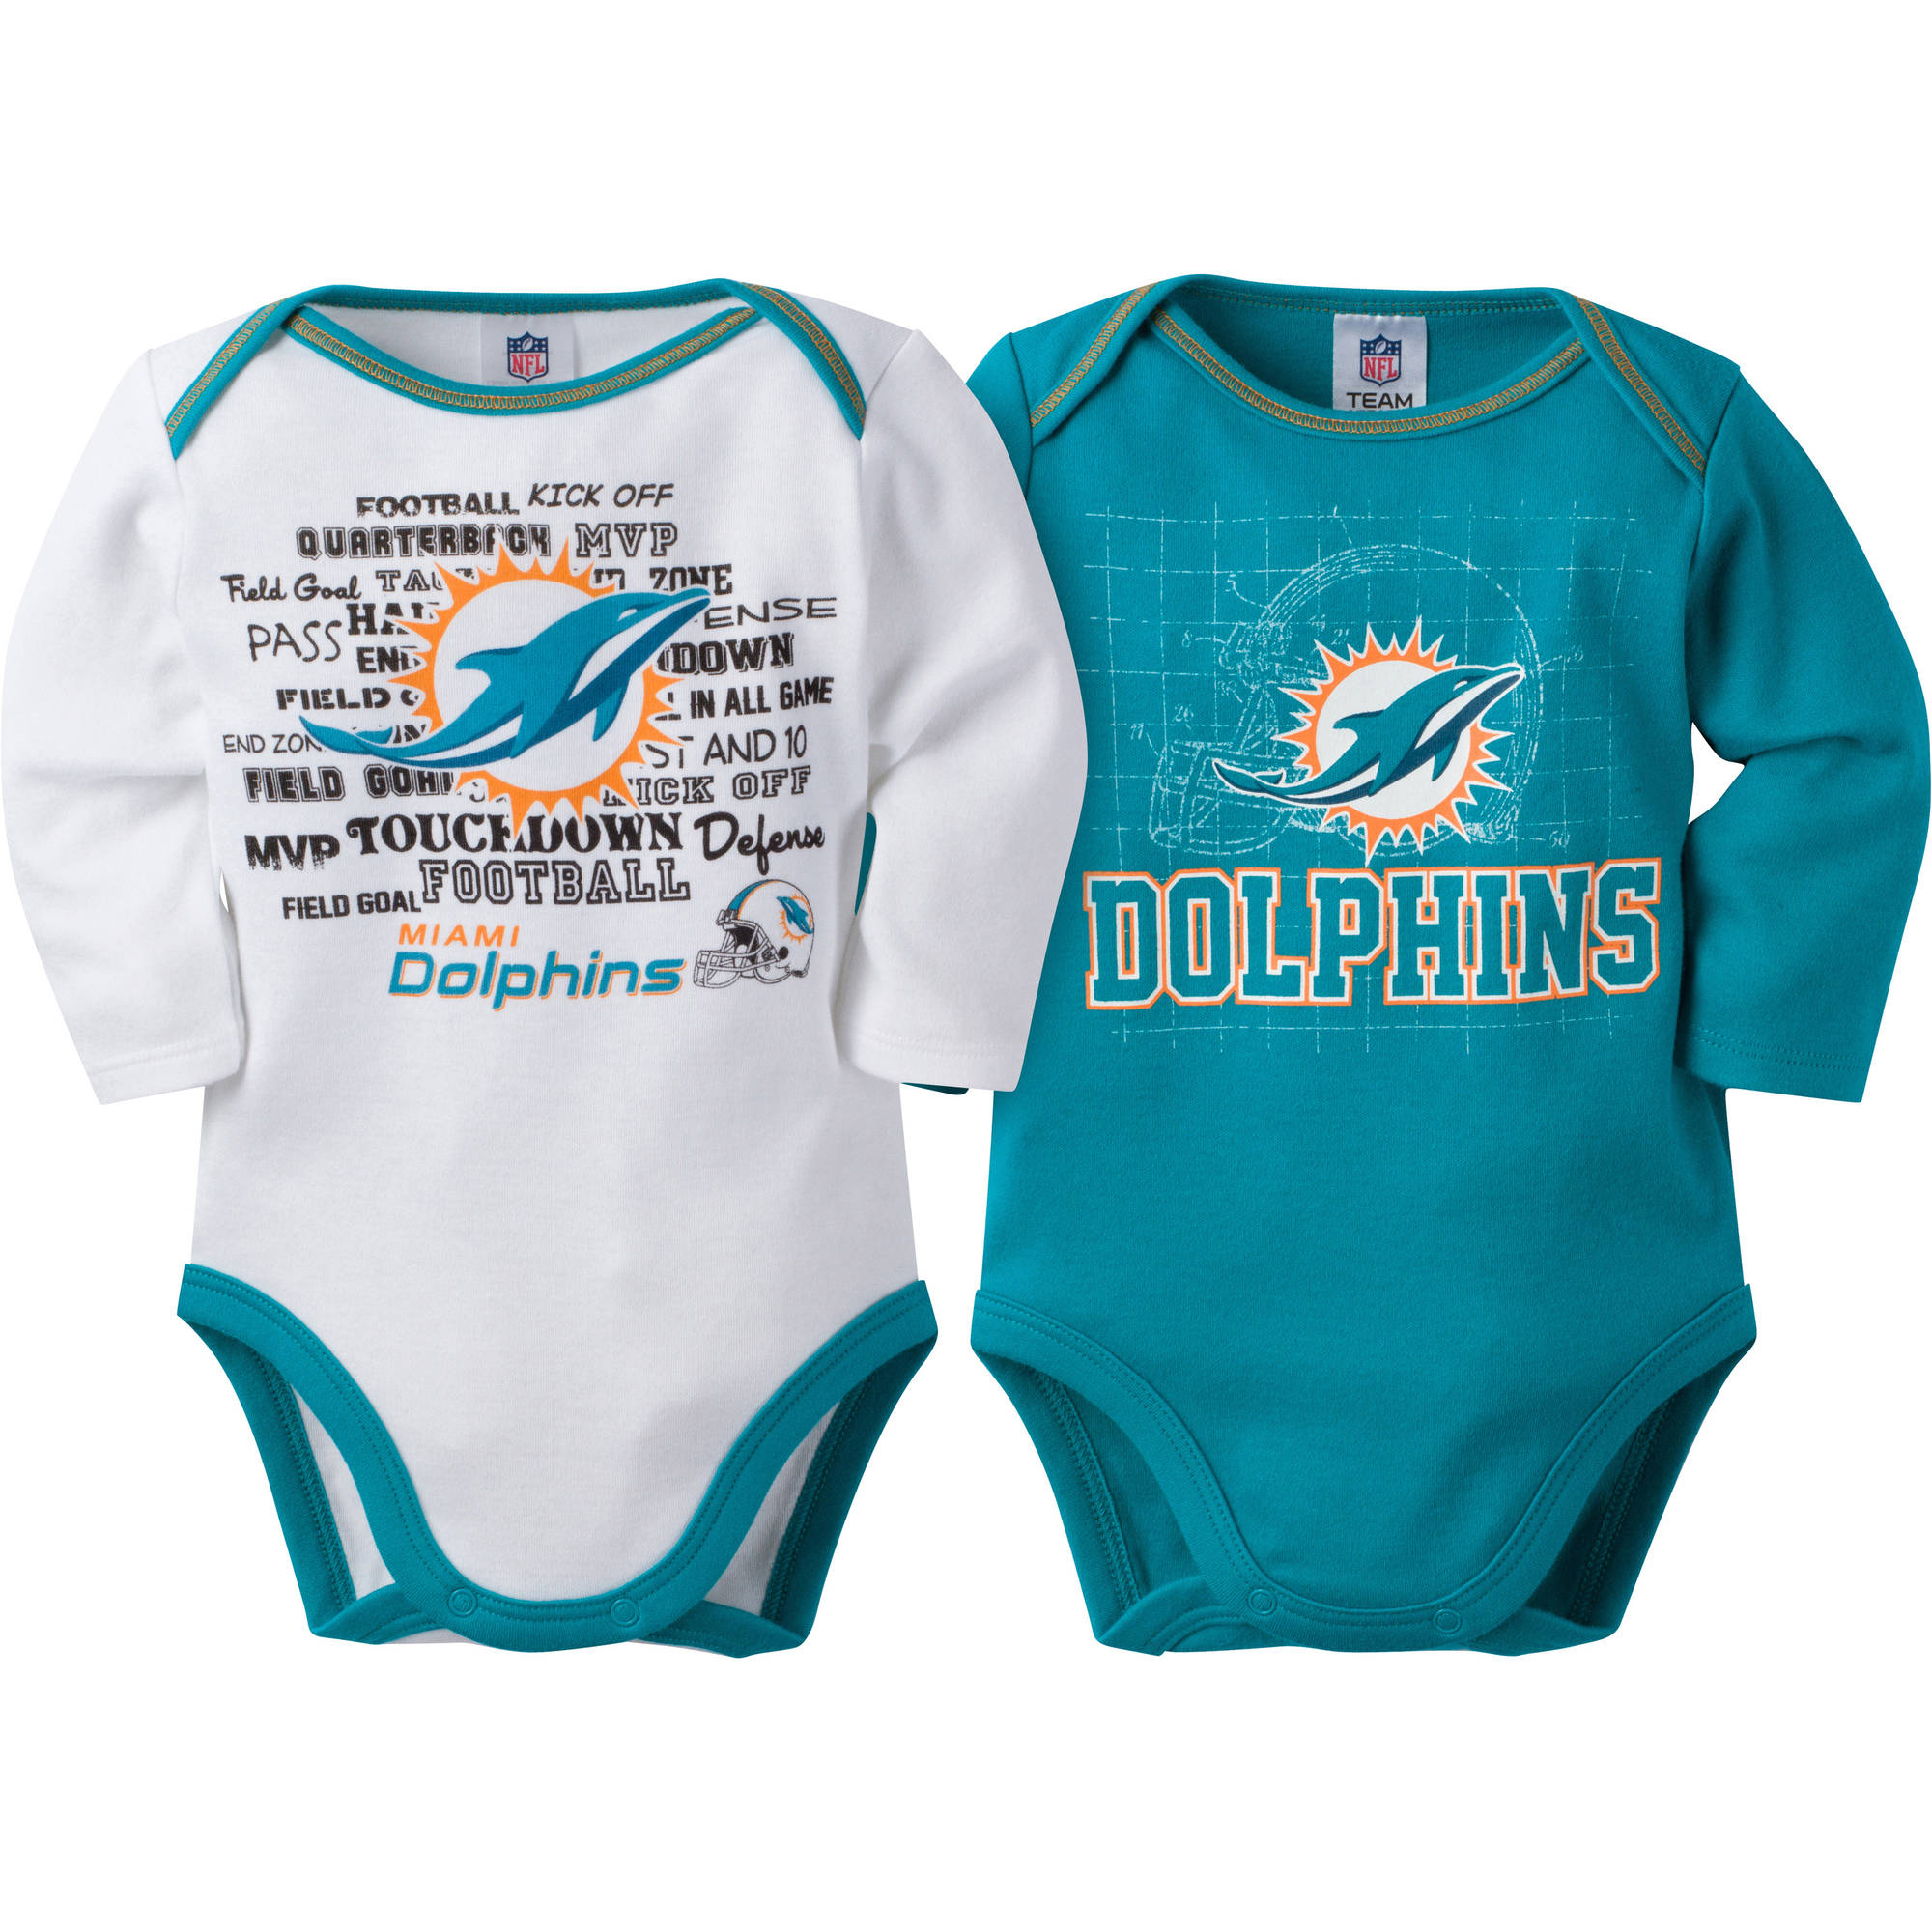 NFL Miami Dolphins Baby Boys Long Sleeve Bodysuit Set, 2-Pack